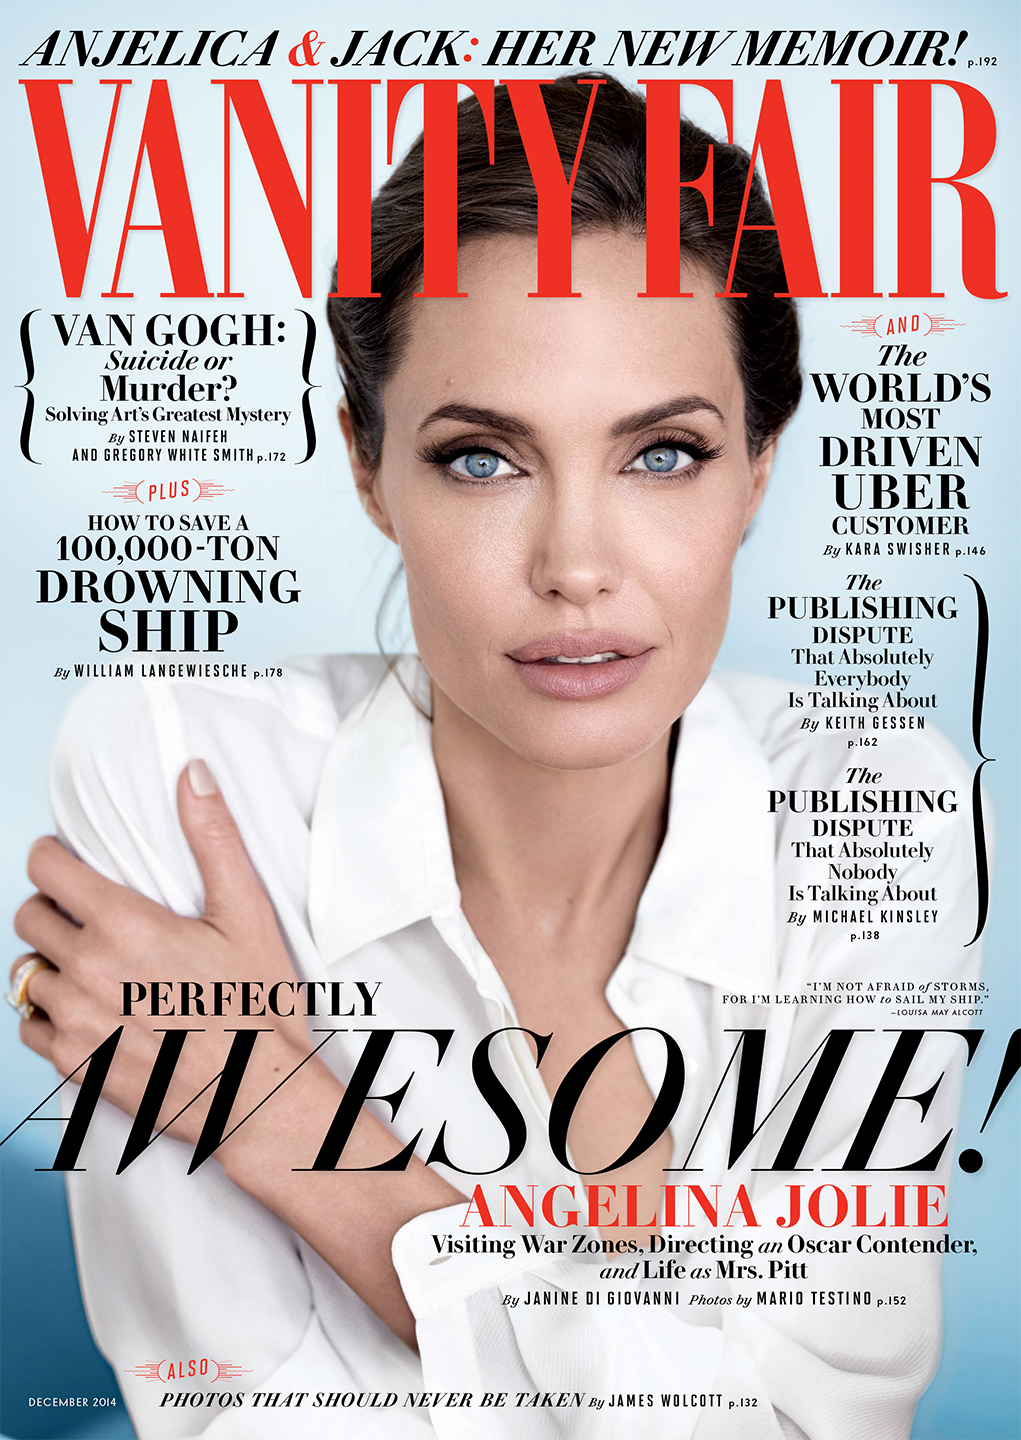 54579cbfb8745bb176802741_vf-cover-angelina-jolie-12.jpg